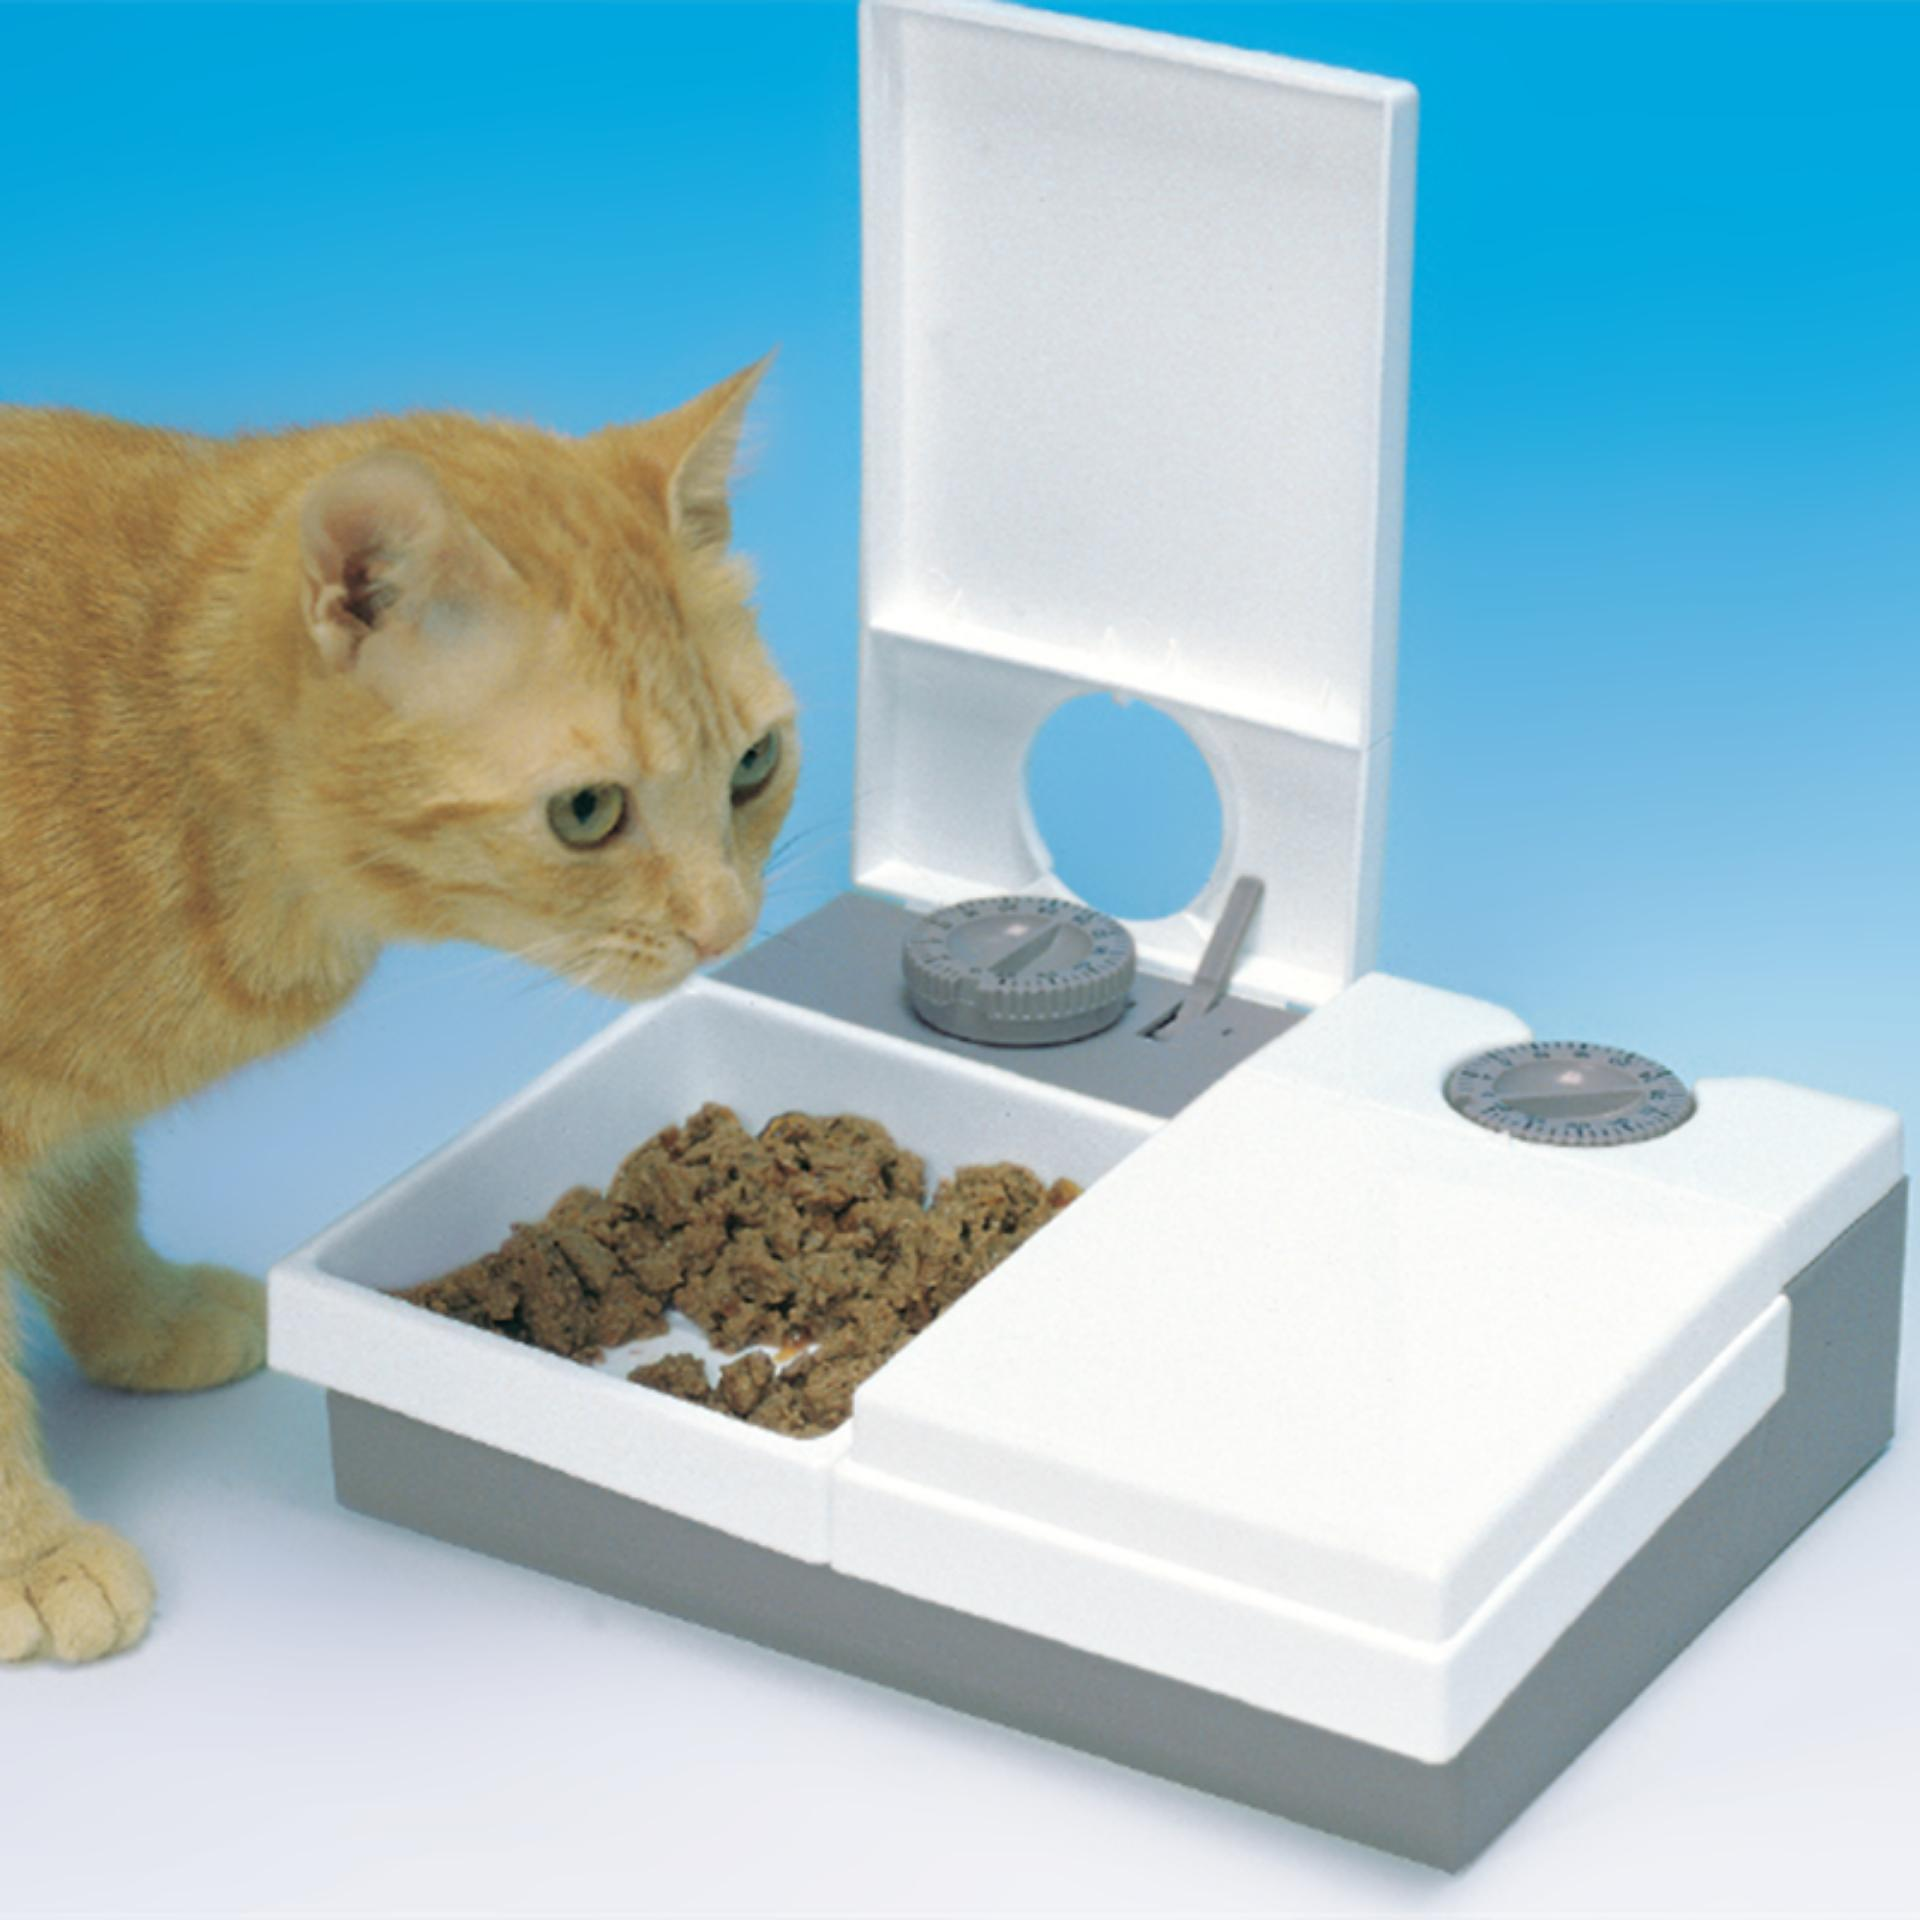 petware animates automatic cat feeder supplies pet